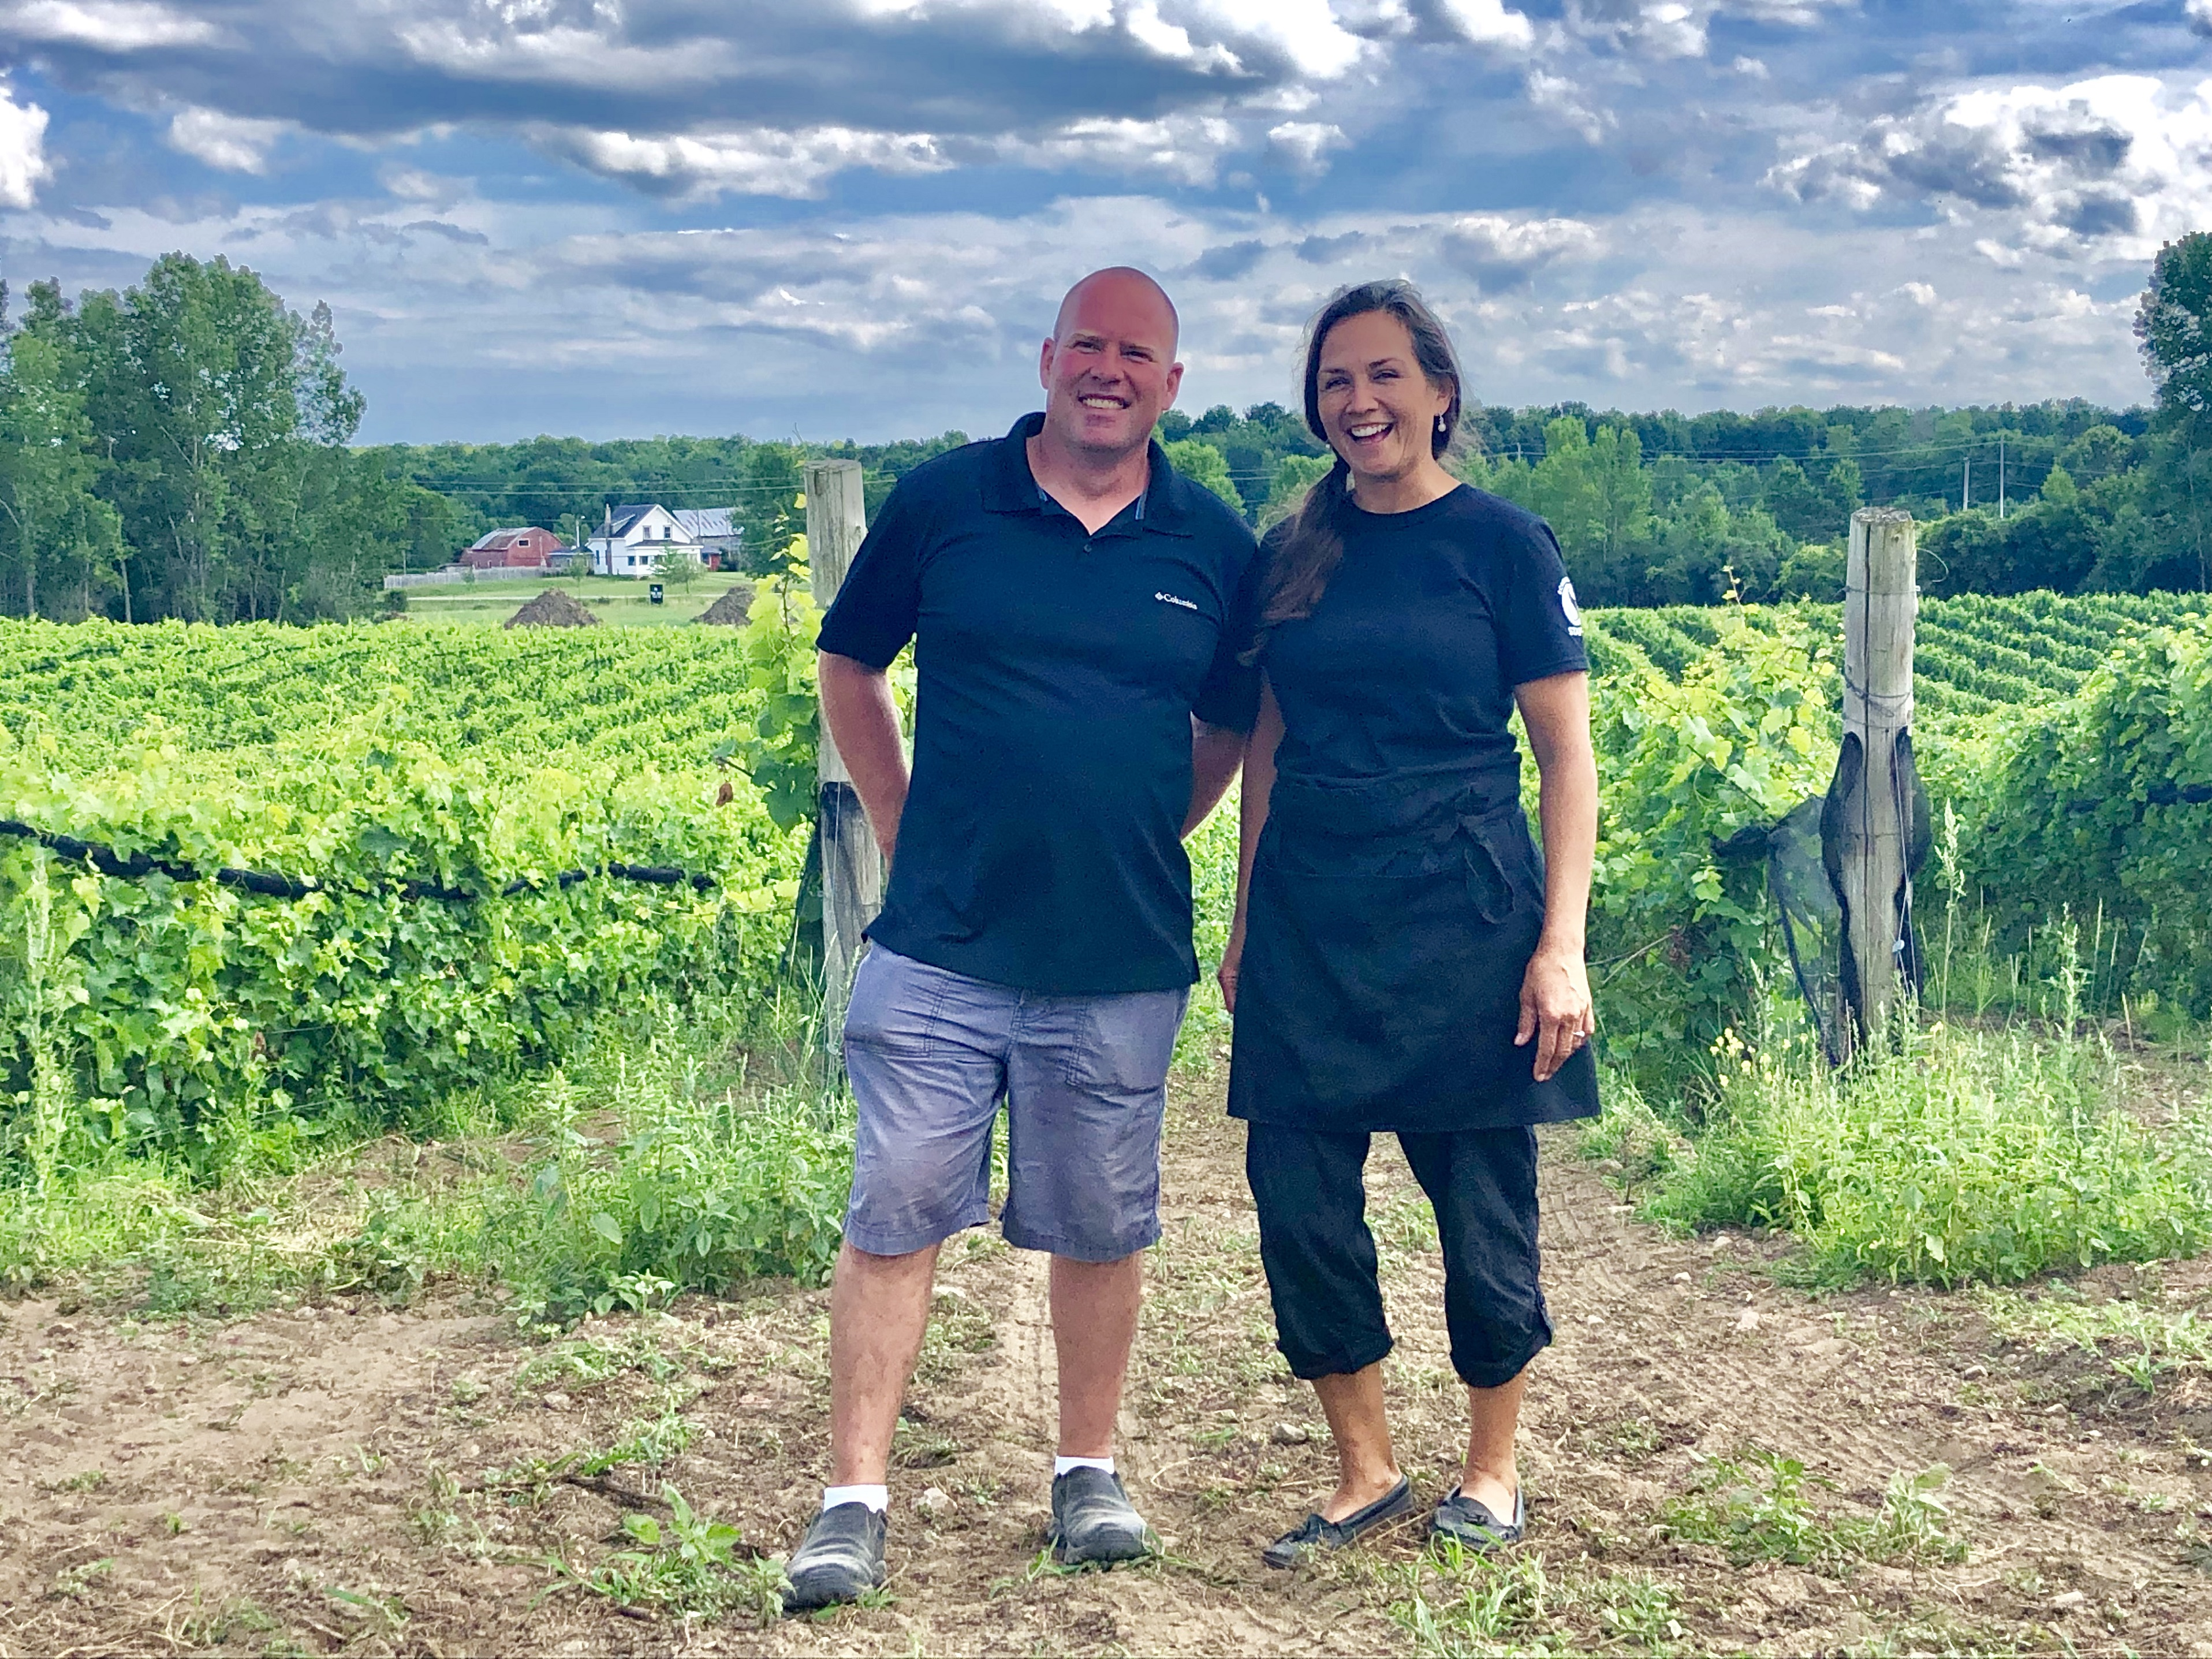 François and Allison Sheuermann at their winery